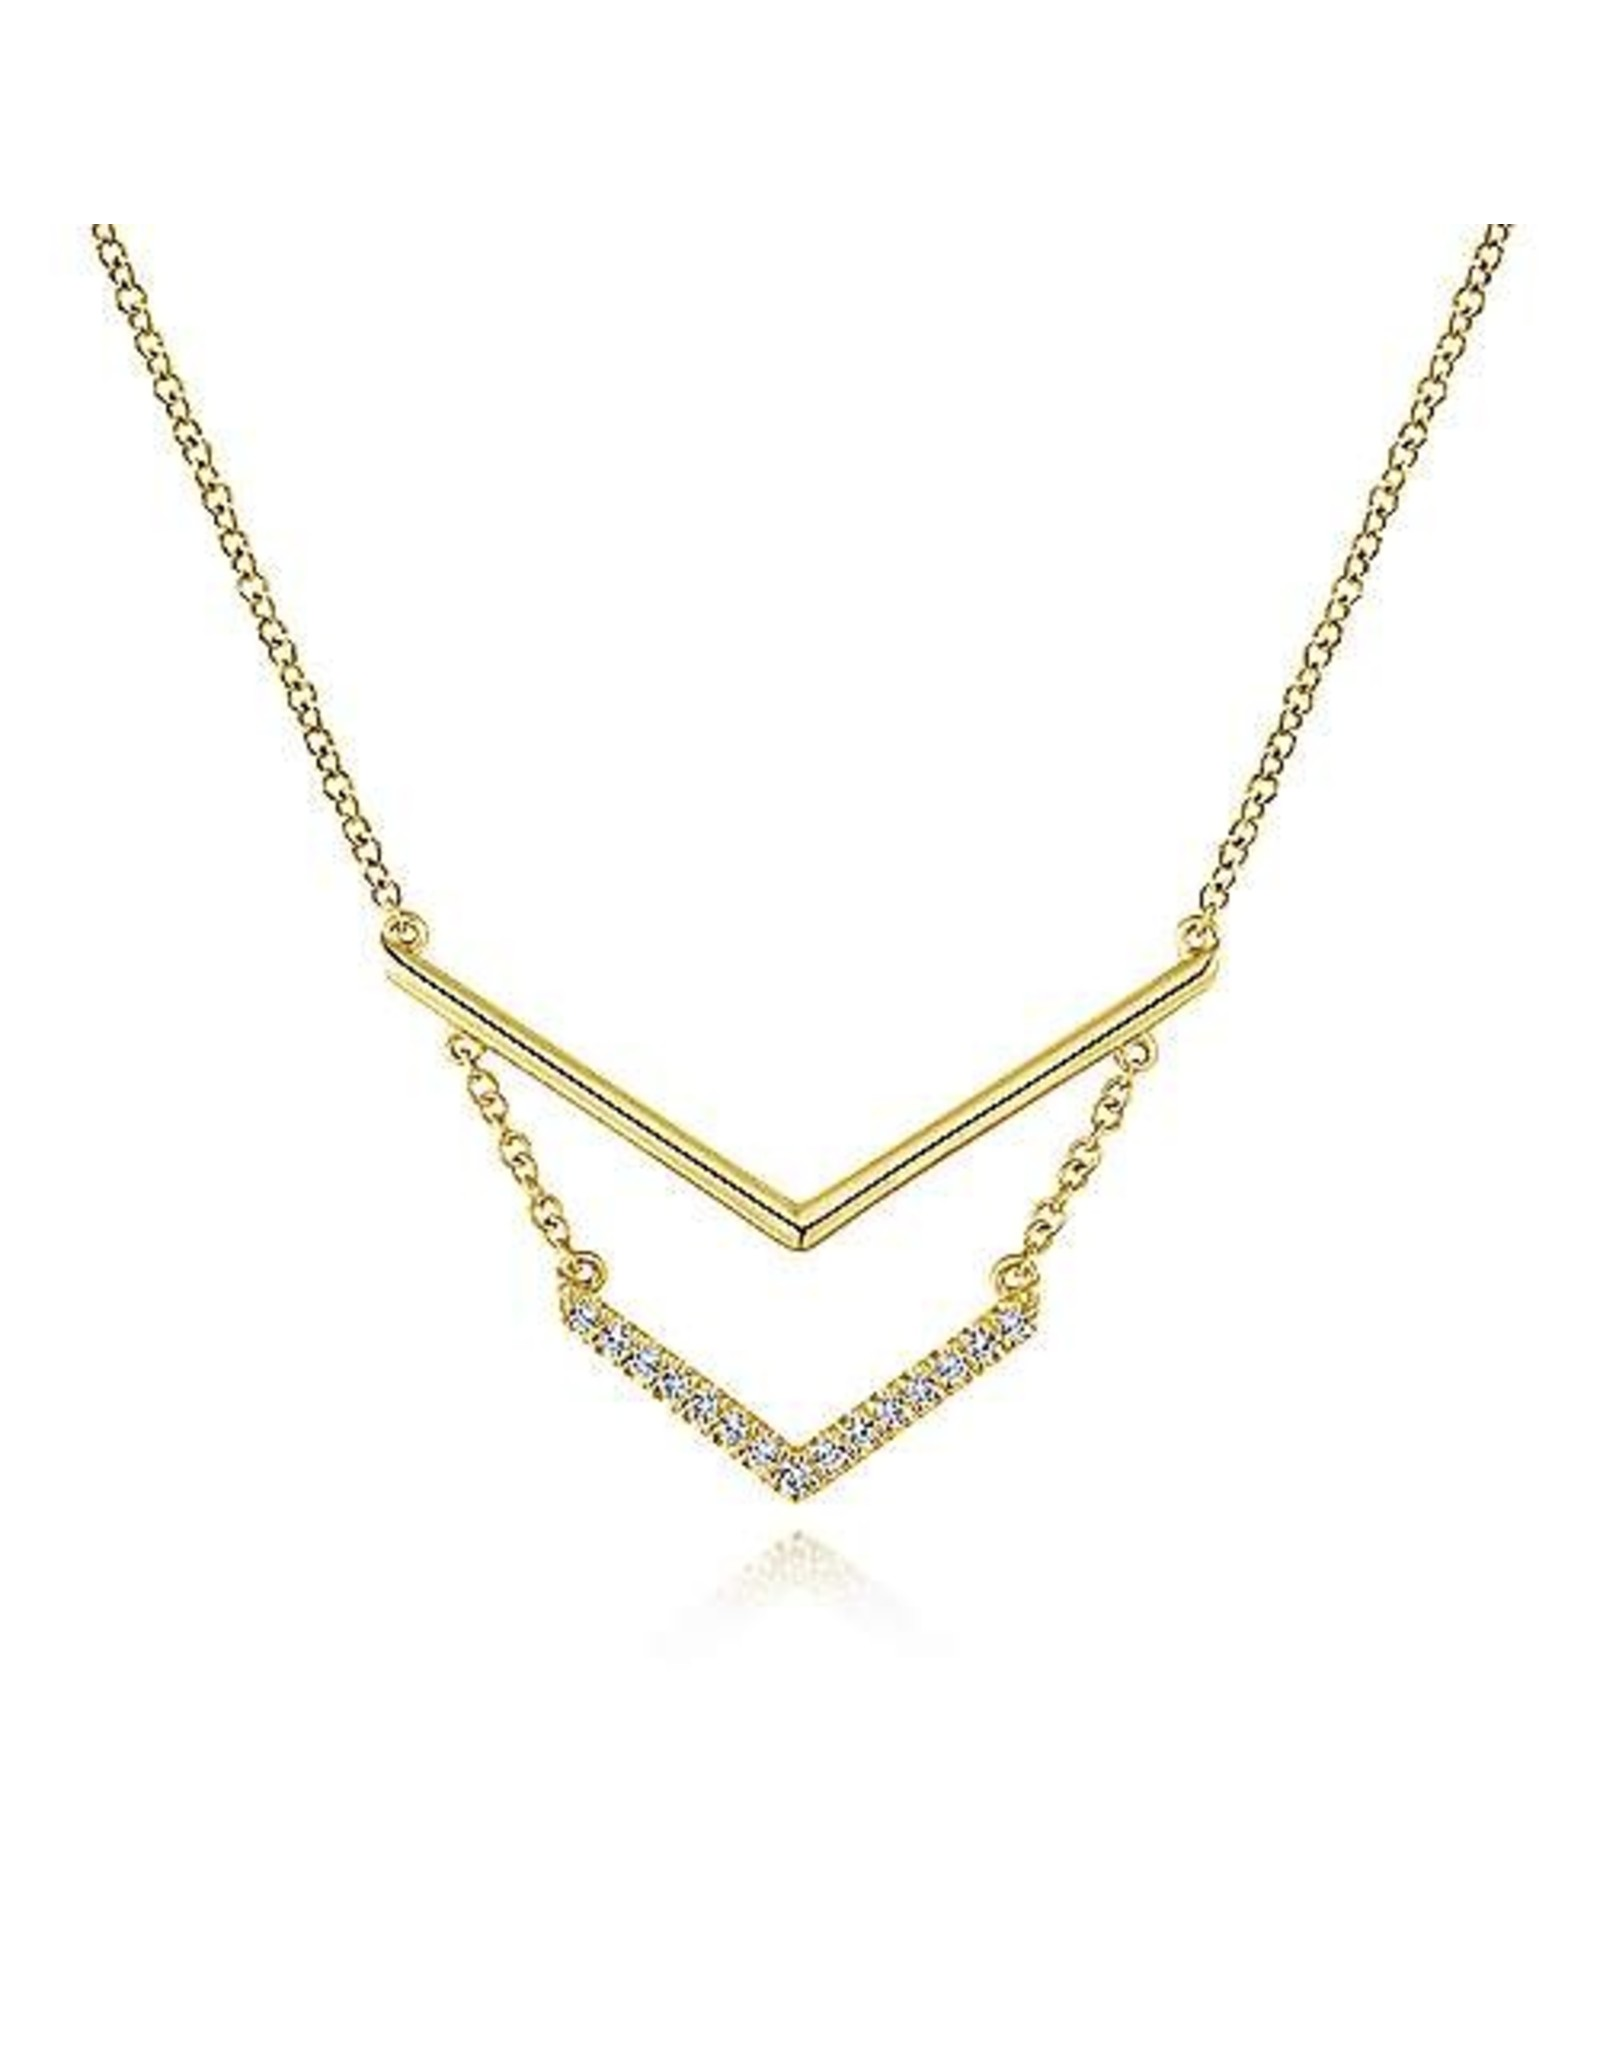 14K Yellow Gold Double Chevron Diamond Necklace, D: 0.07ct